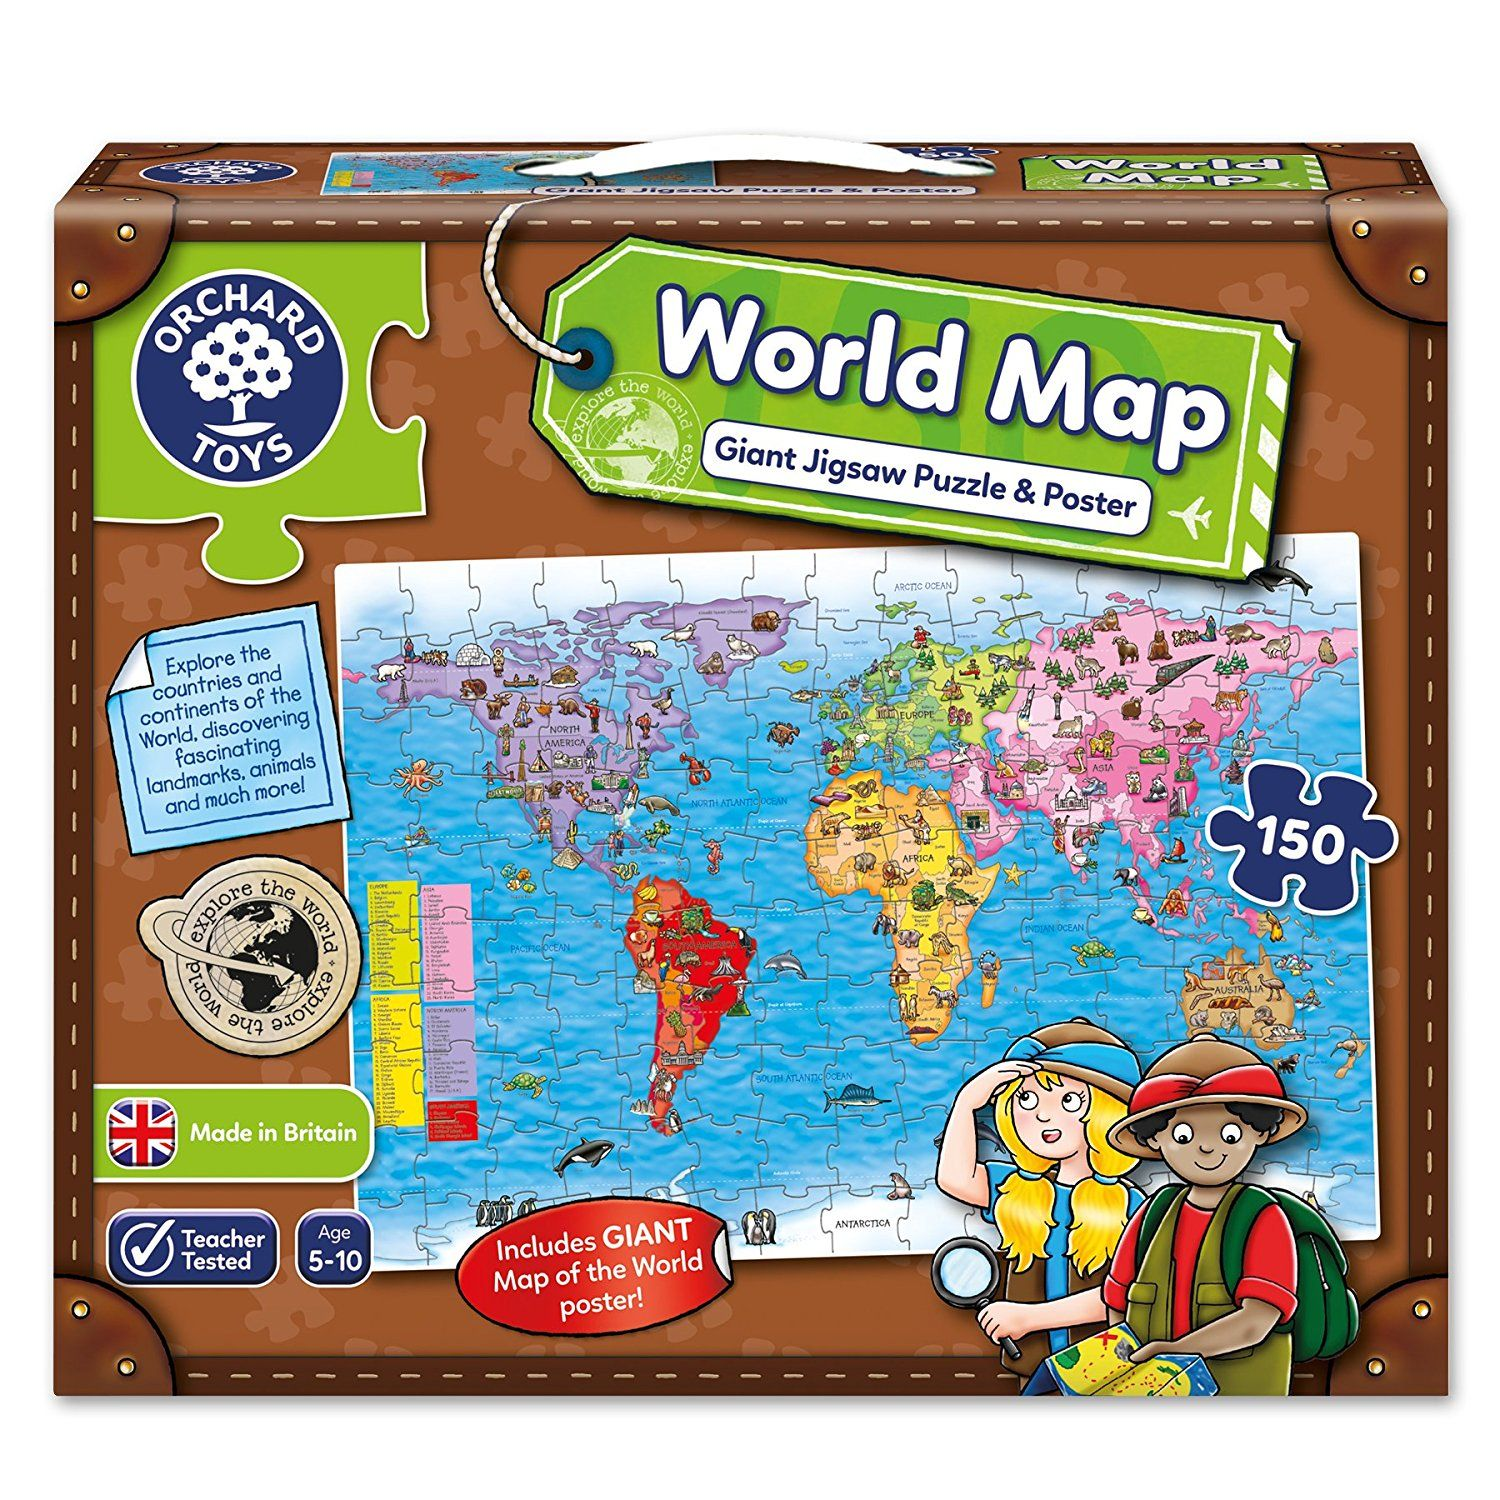 World map yorkshire jigsaw store gumiabroncs Images